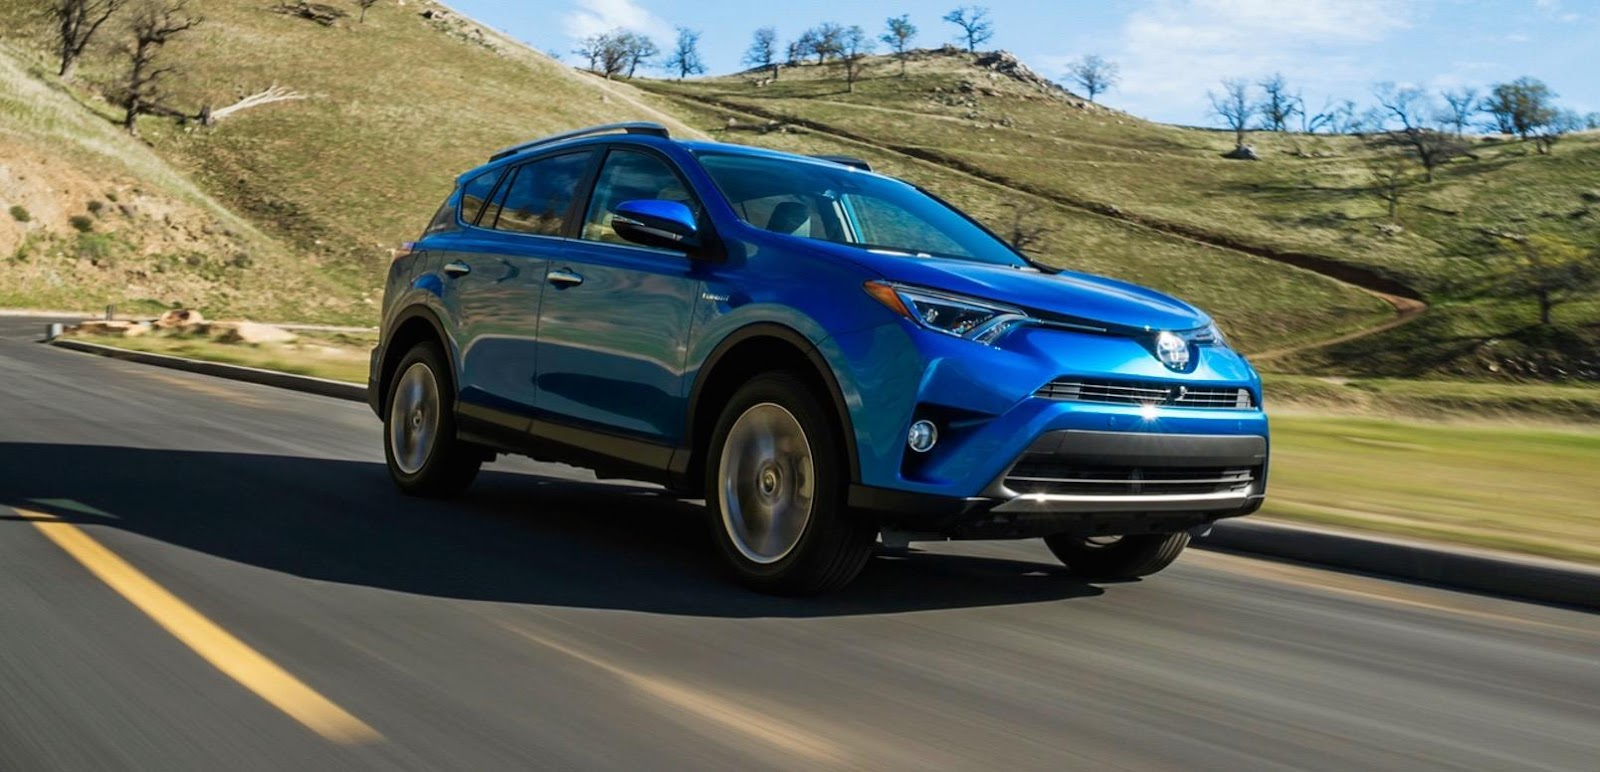 2016 Rav4 in Blue | Toyota dealership serving Burnaby, Vancouver and New West